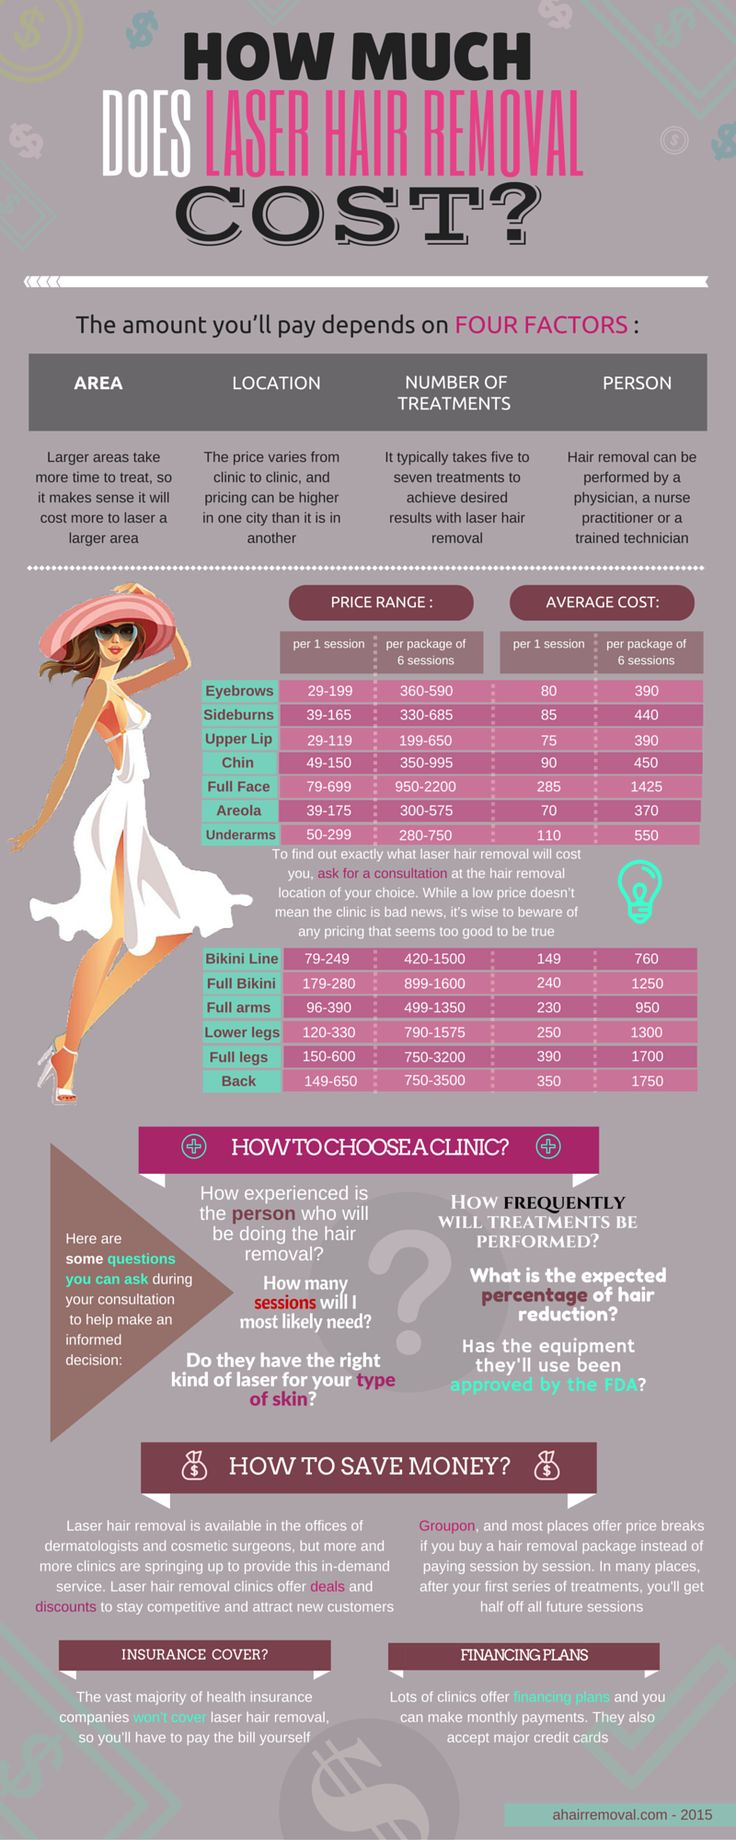 Getting laser hair removal? Here's what you need to know ahairremoval.com/... Check out cool and useful infographic on the cost of laser hair removal in the United States. It is nice and informative!